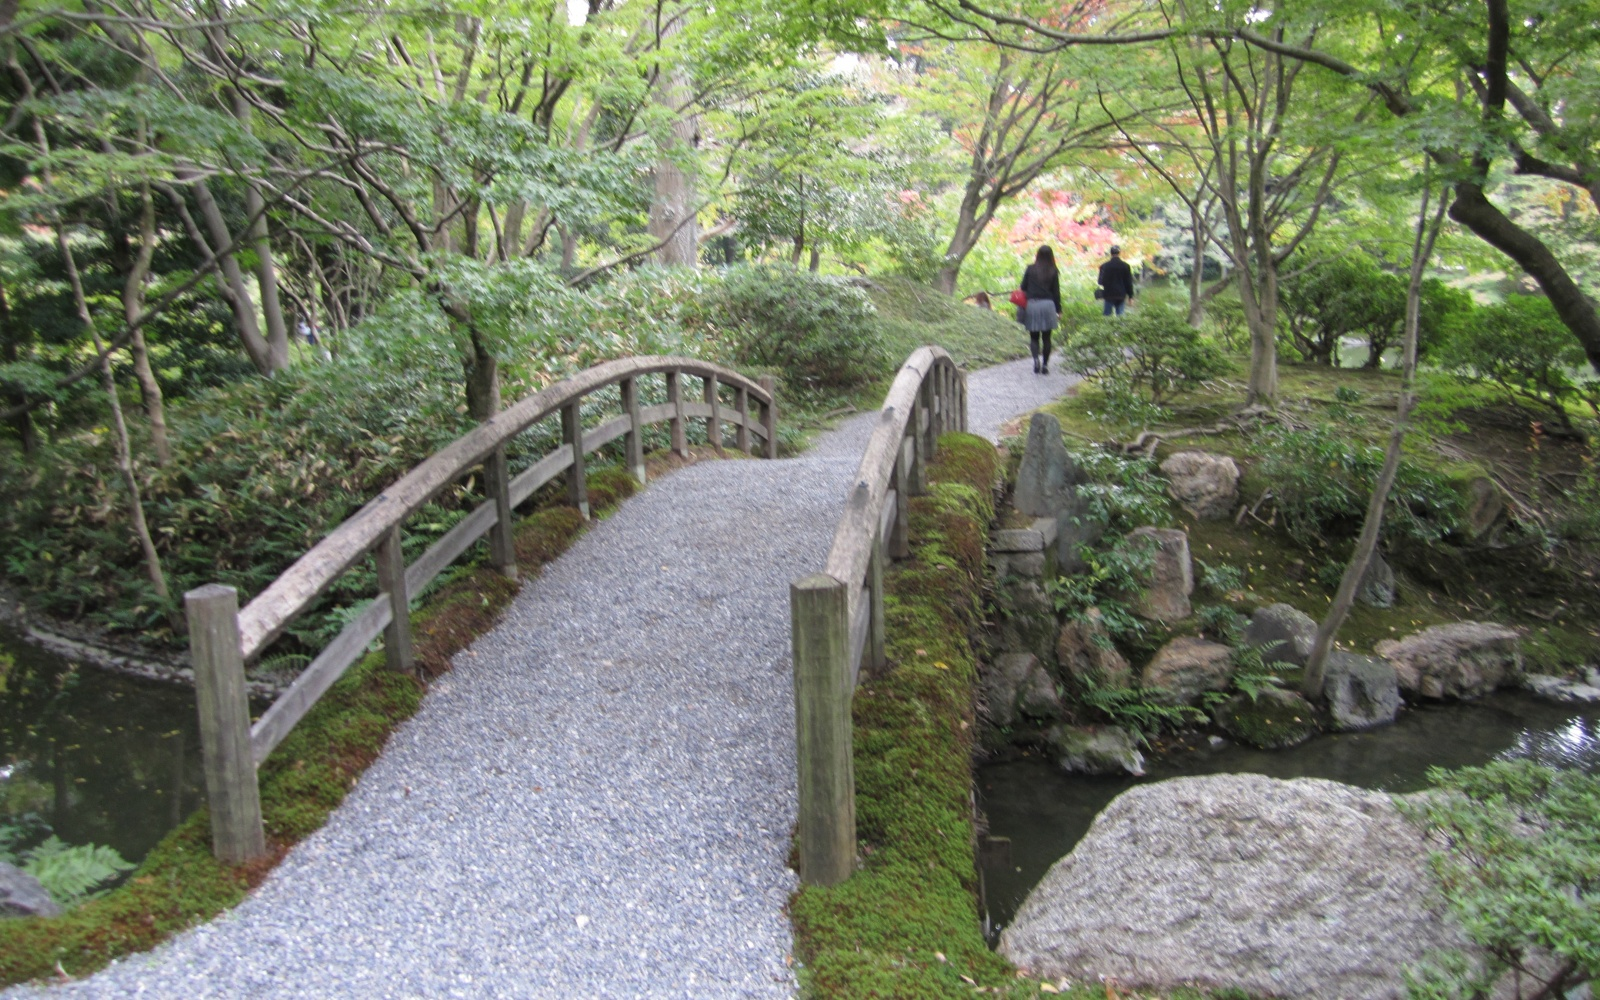 201210-a-different-nature-kyoto-gardens